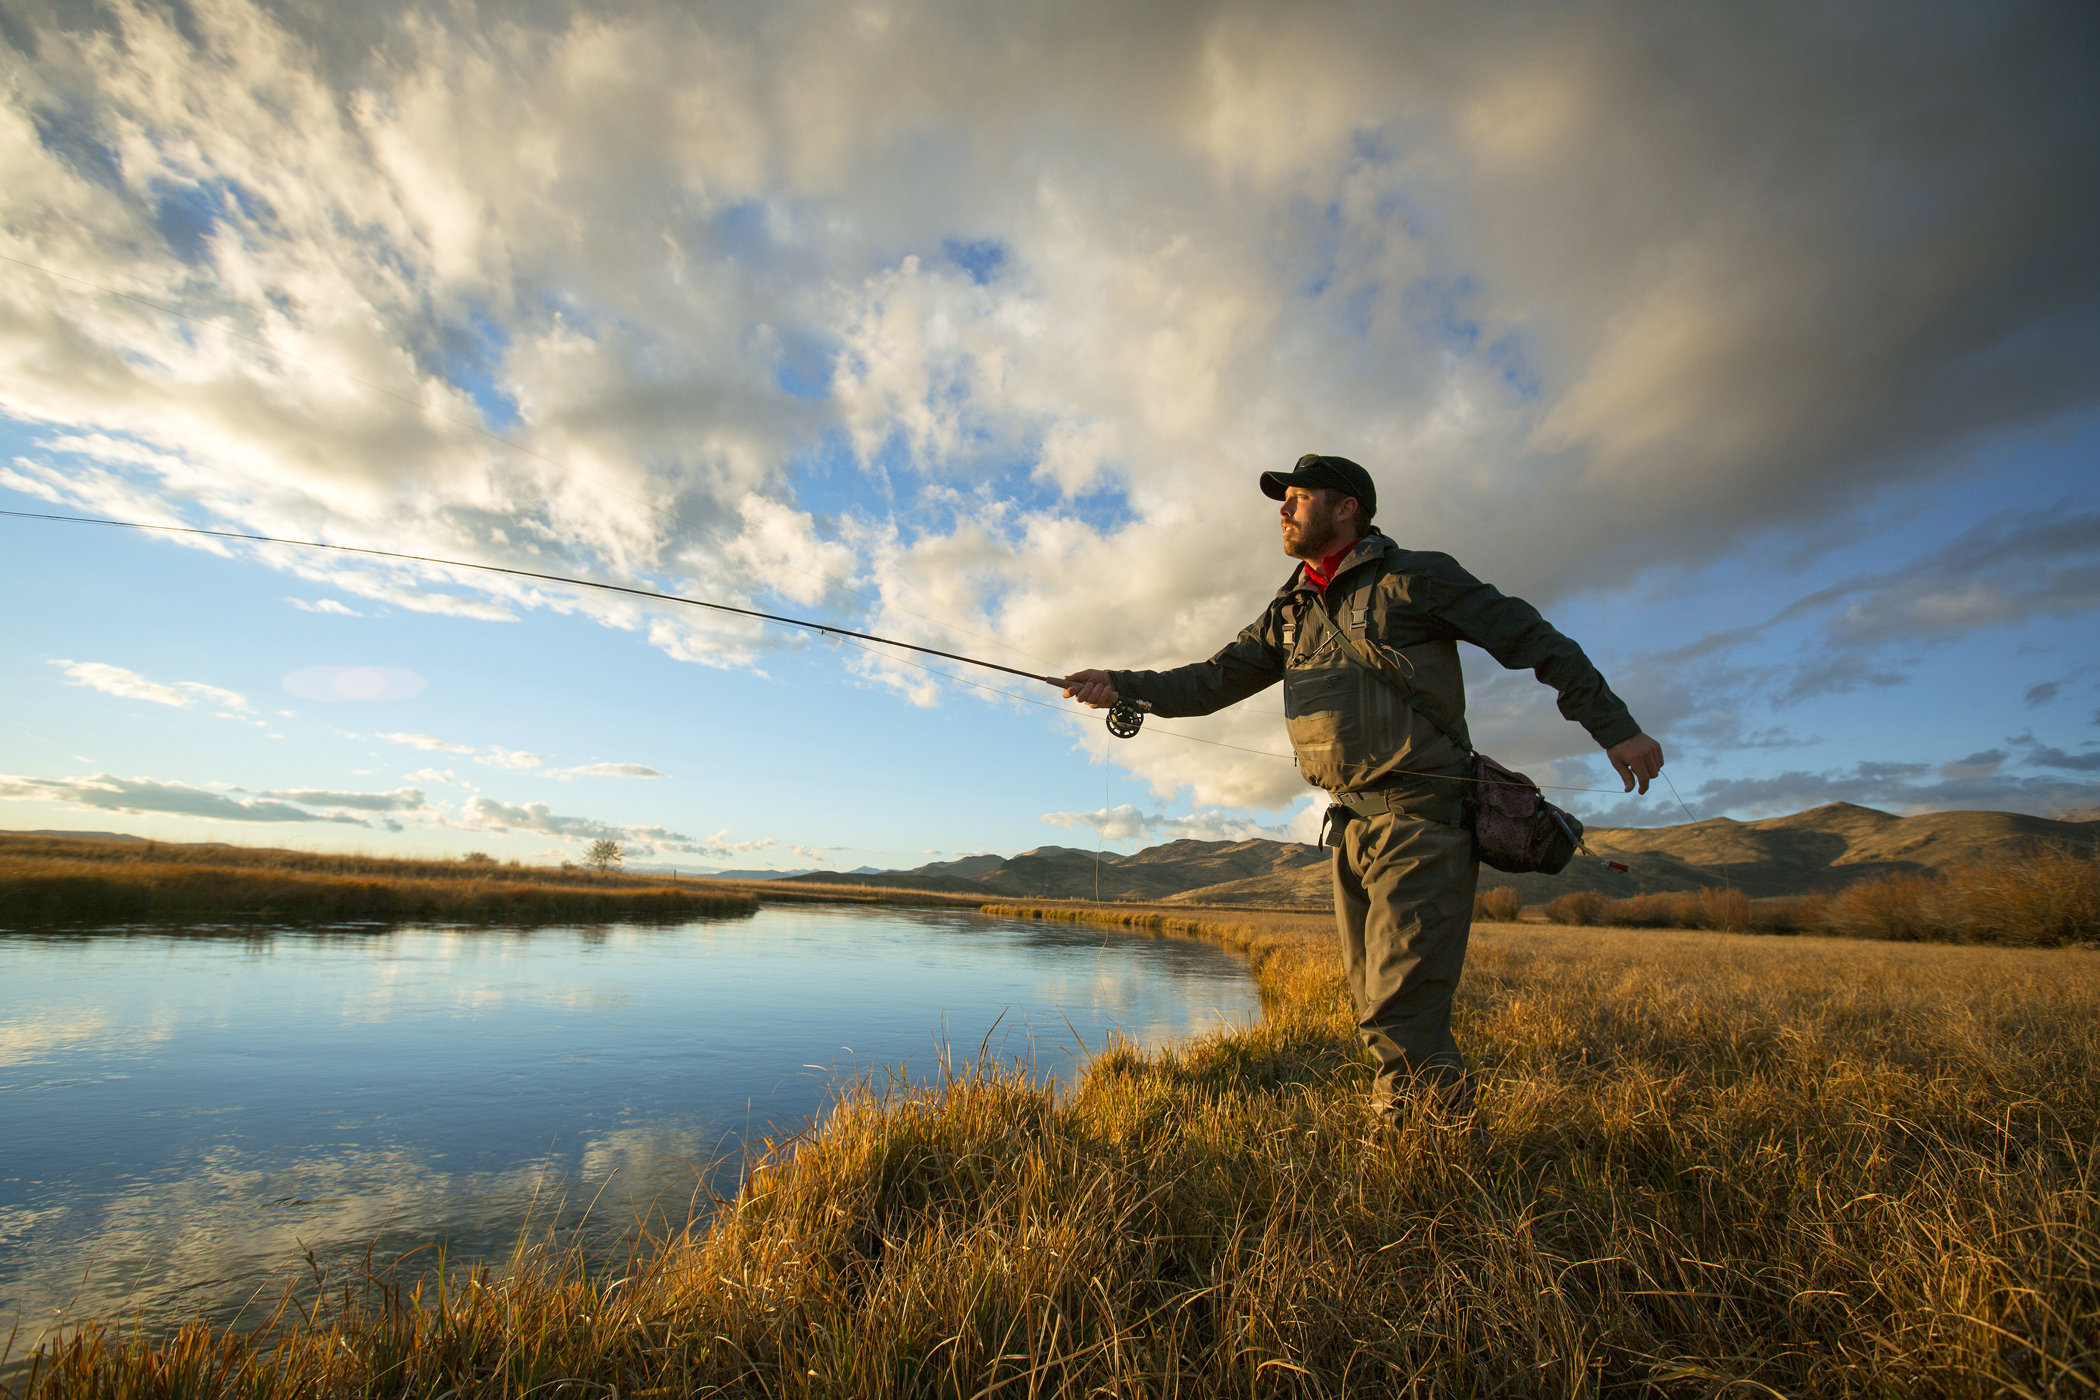 Fly-fishing in Sun Valley, the pearl of Ketchum, Idaho